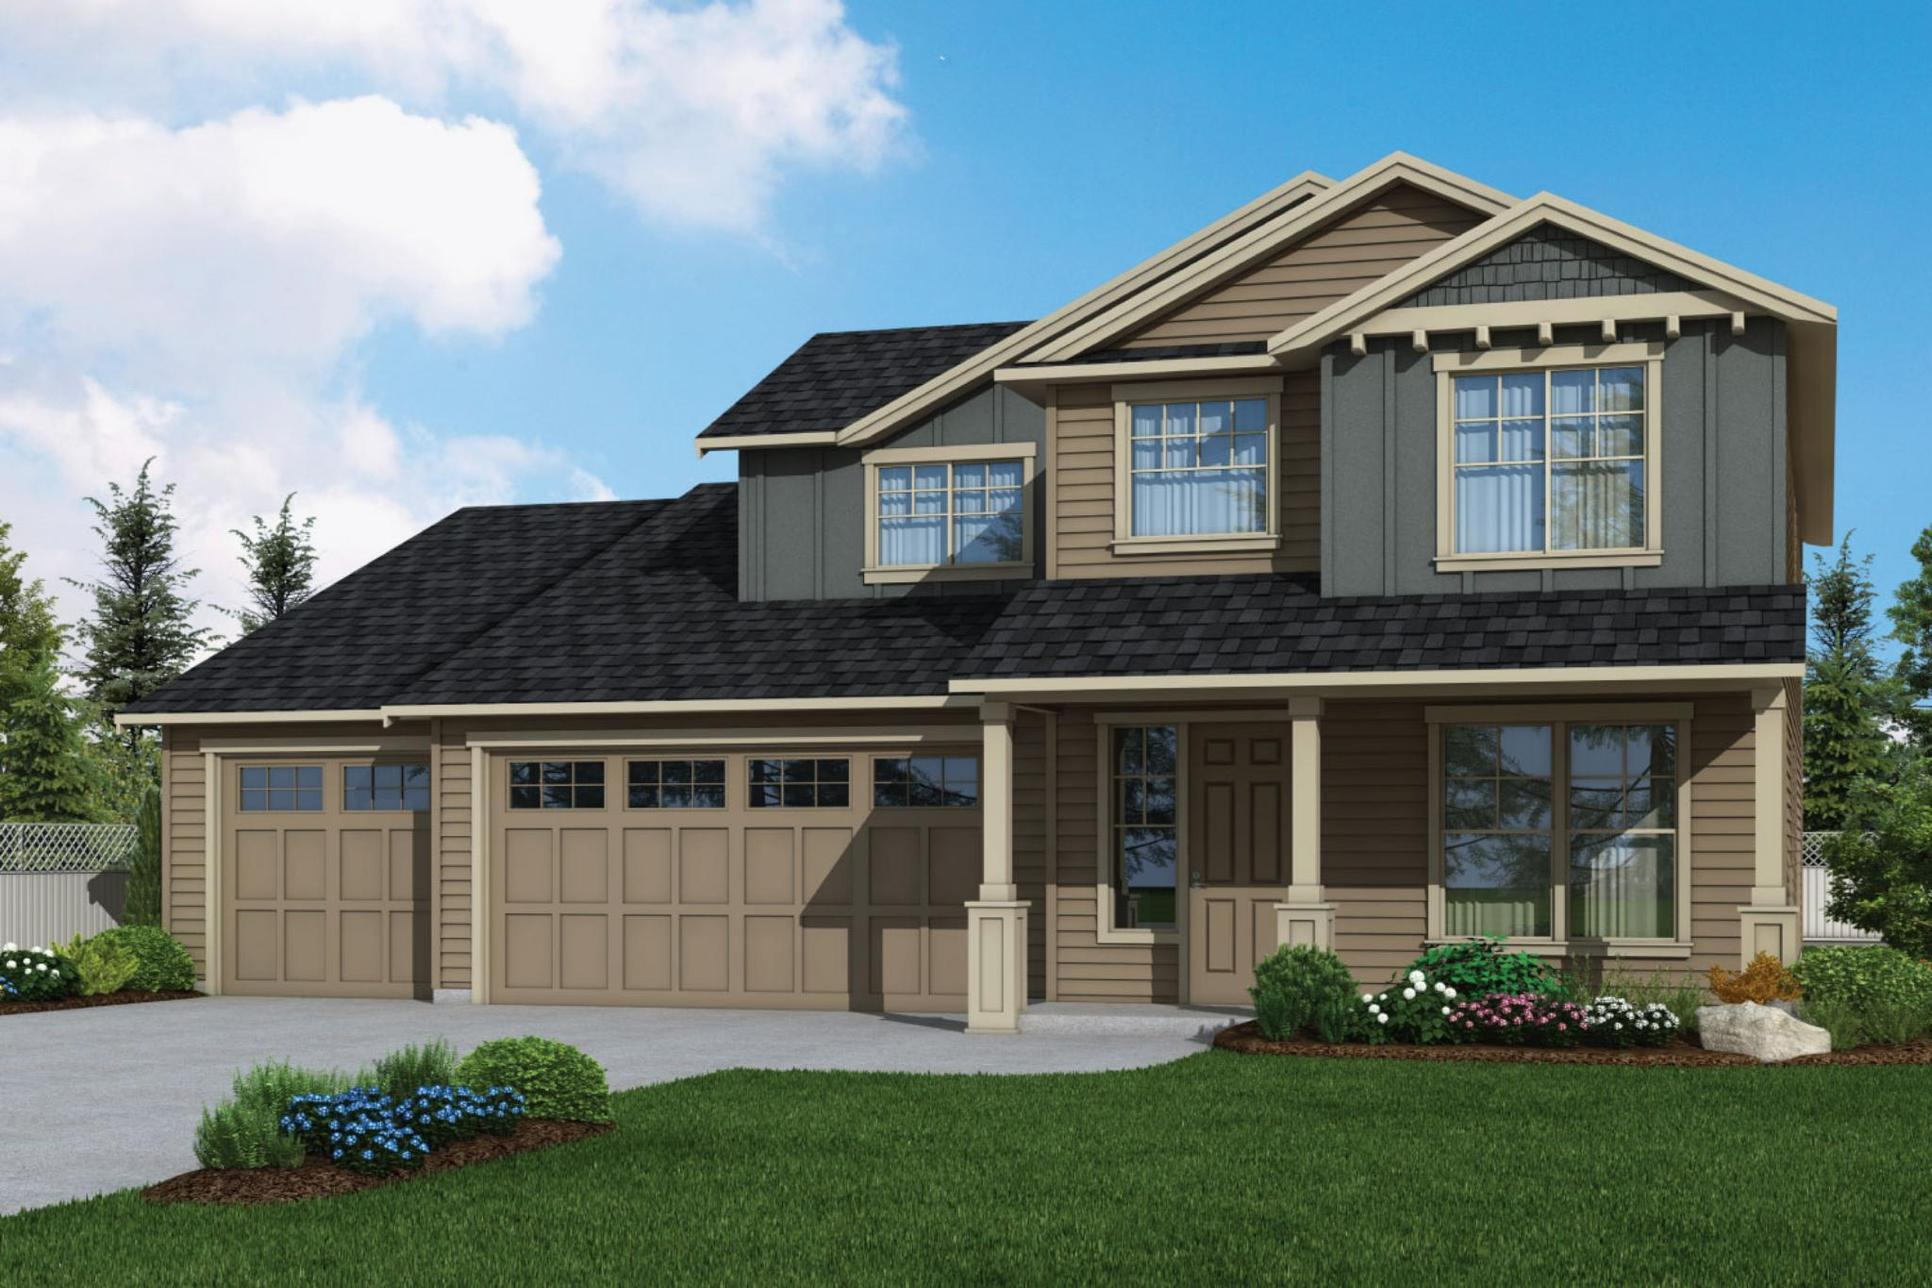 Plan 2952 Elevation 1 Rendering by Aho Construction:Plan 2952 Elevation 1